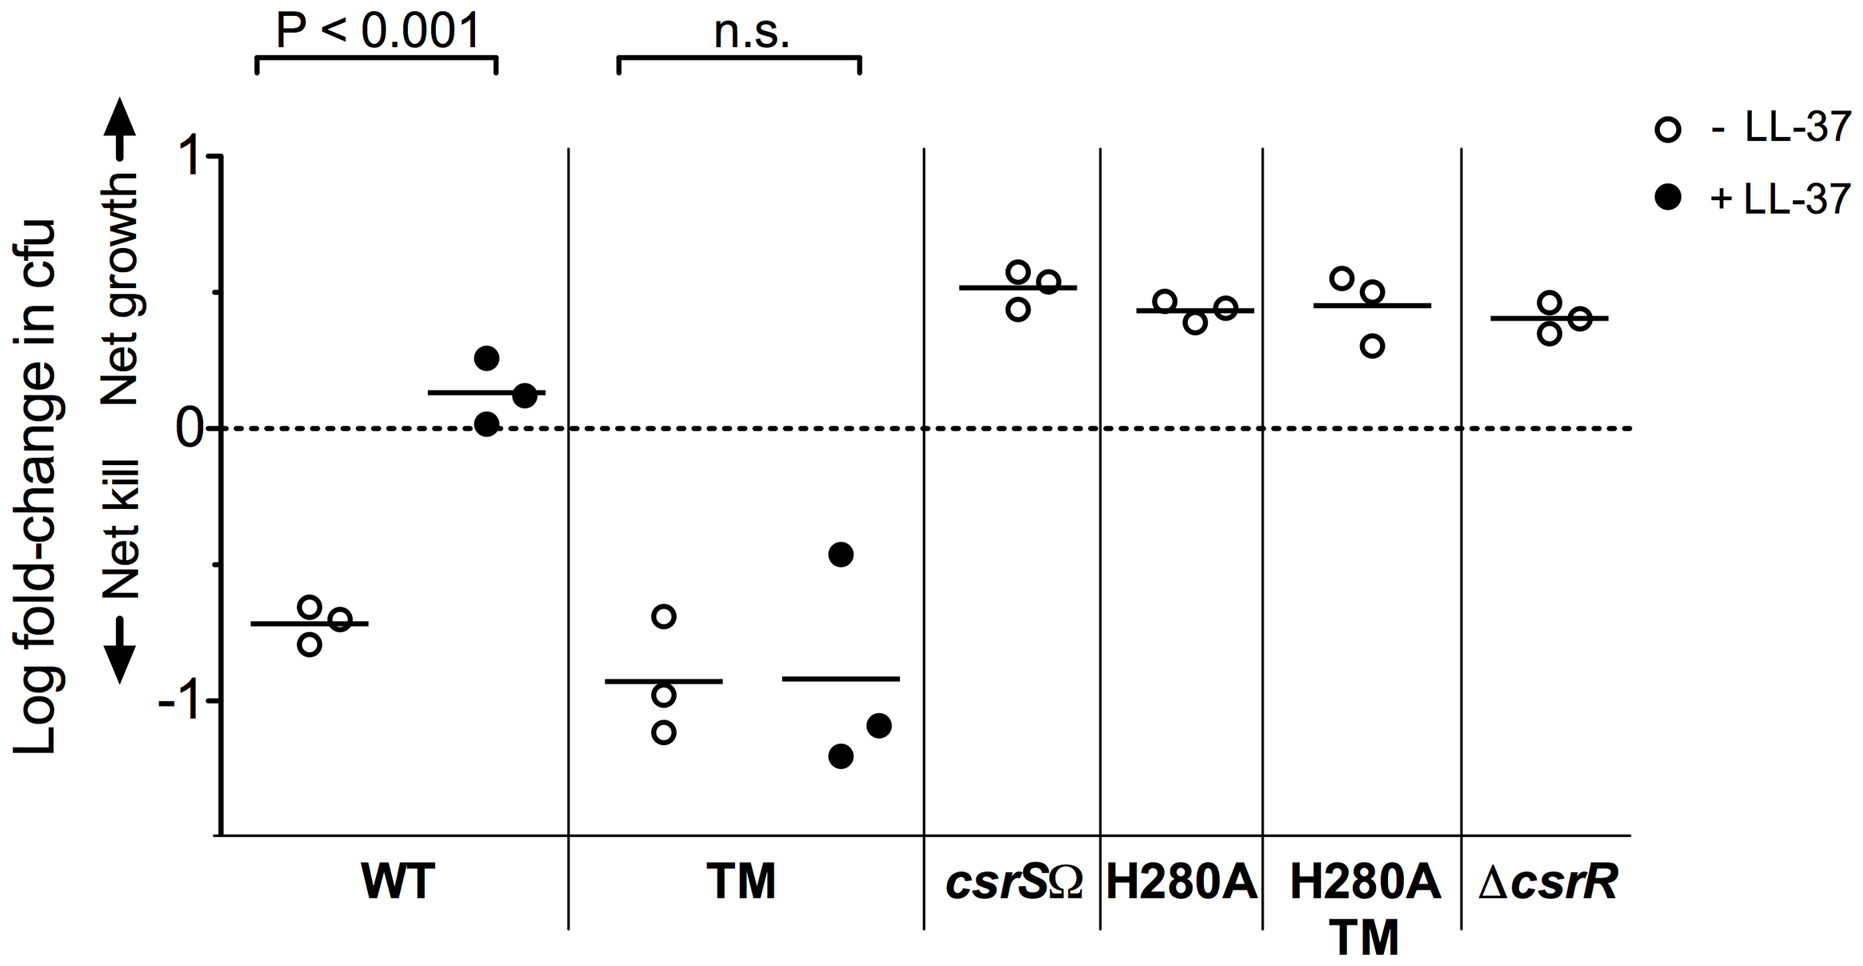 LL-37 signaling depends on a functional CsrS to induce GAS resistance to opsonophagocytic killing.